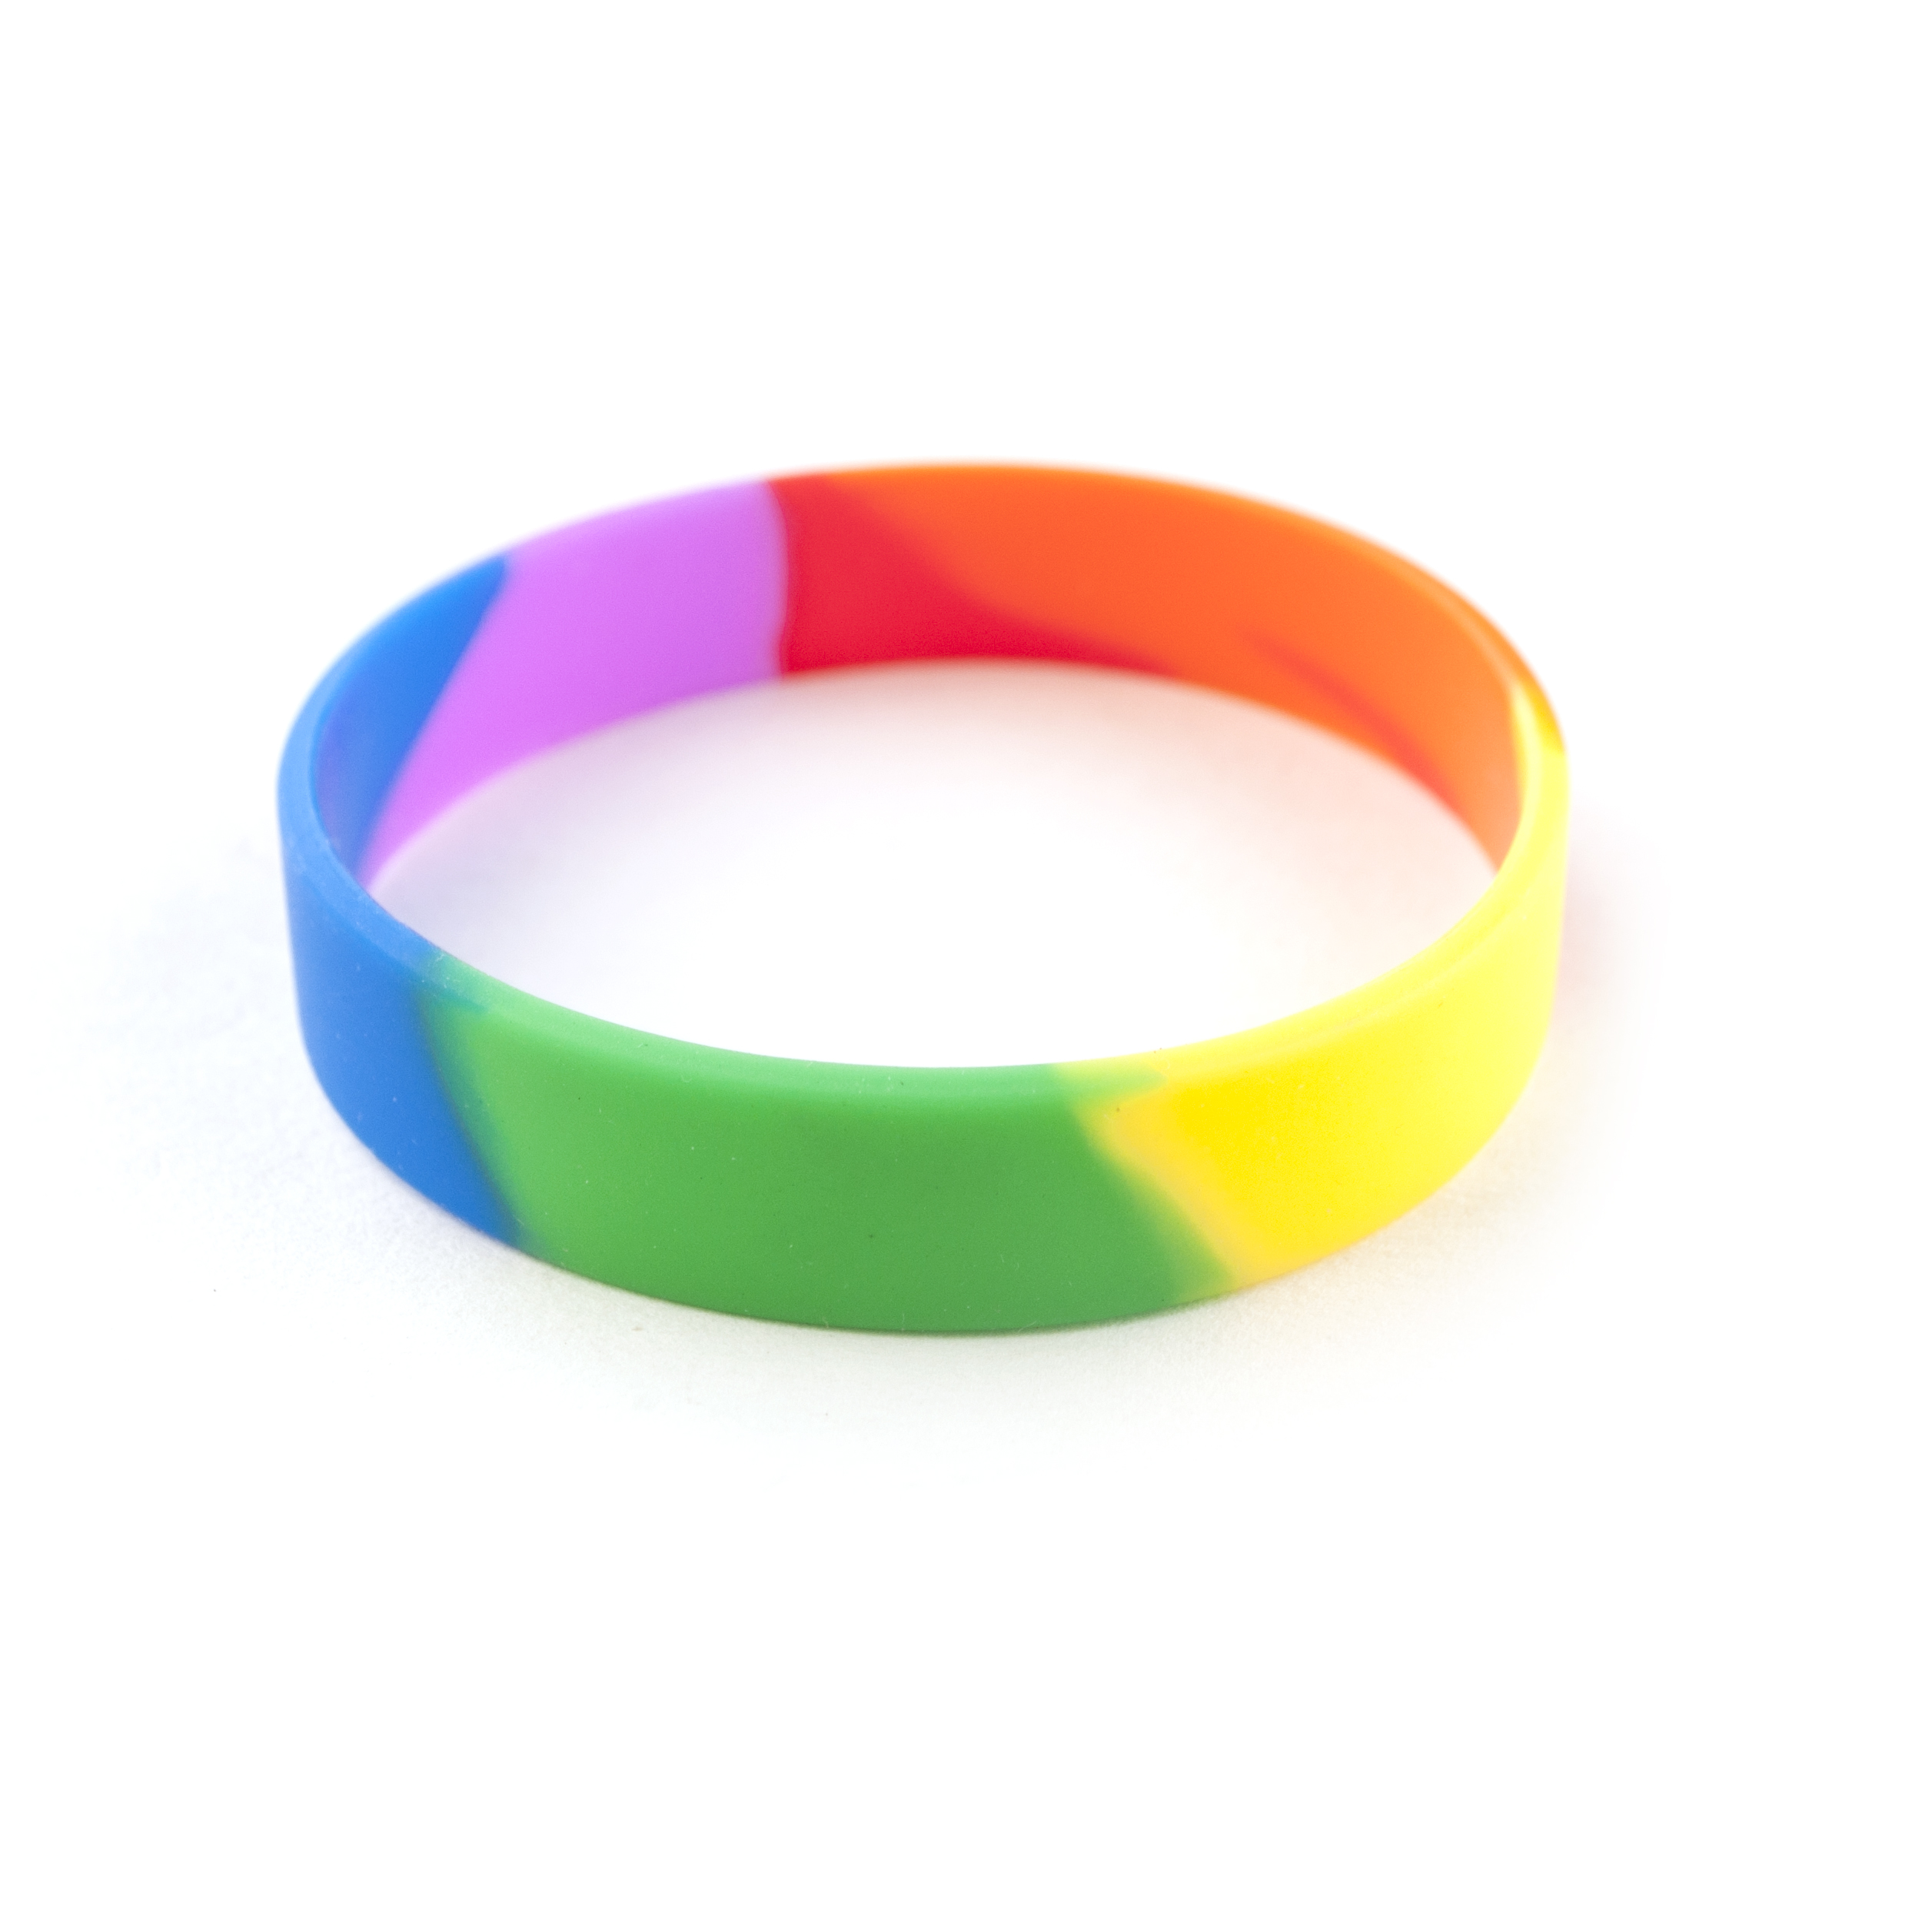 Gogo 600pcs Silicone Bracelets Sized Rubber Band Wristbands For Party Rainbow